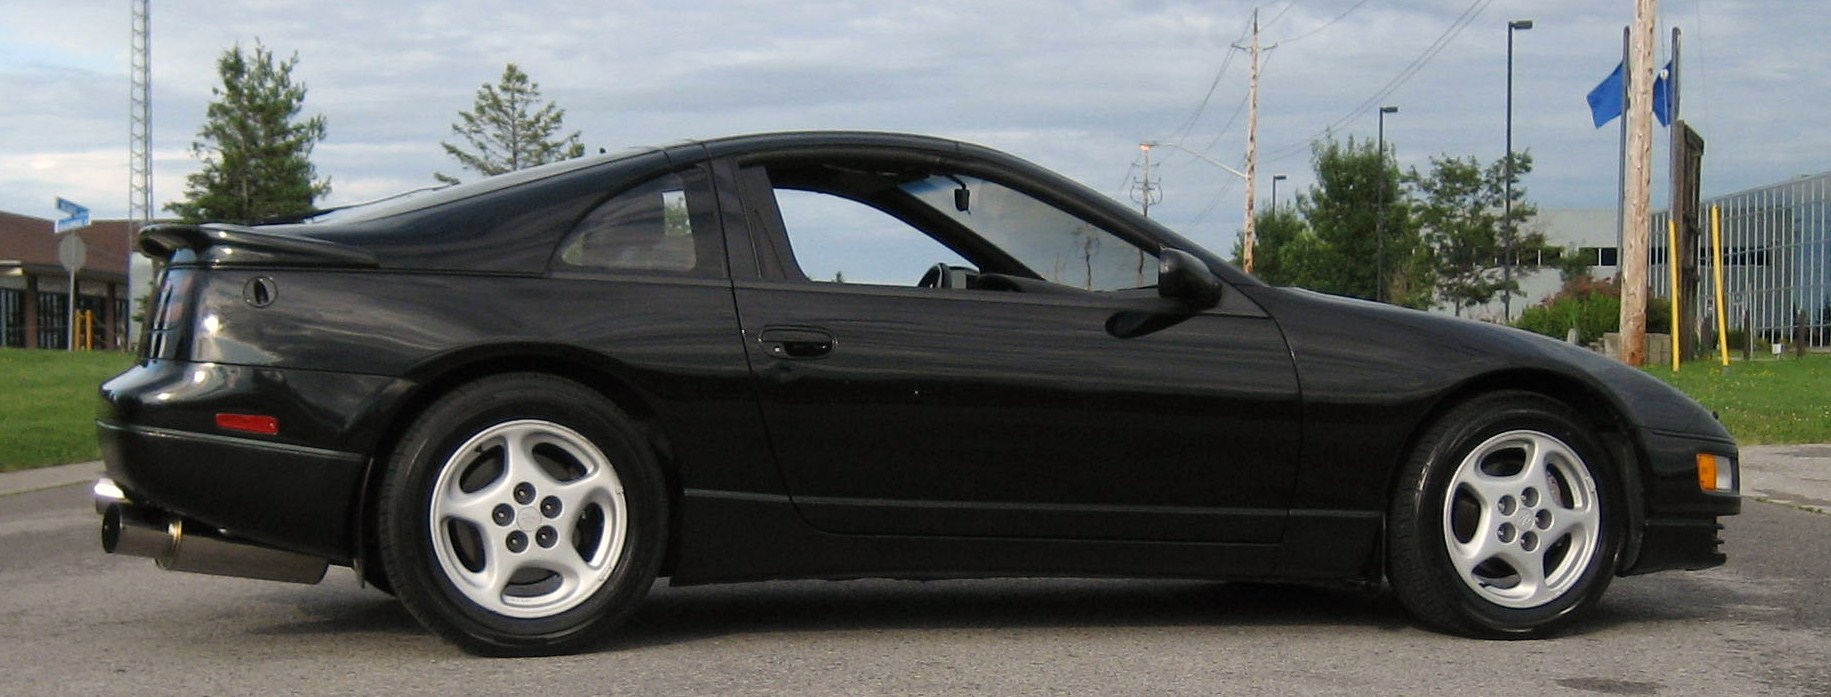 1990 Black Nissan 300ZX Twin Turbo picture, mods, upgrades